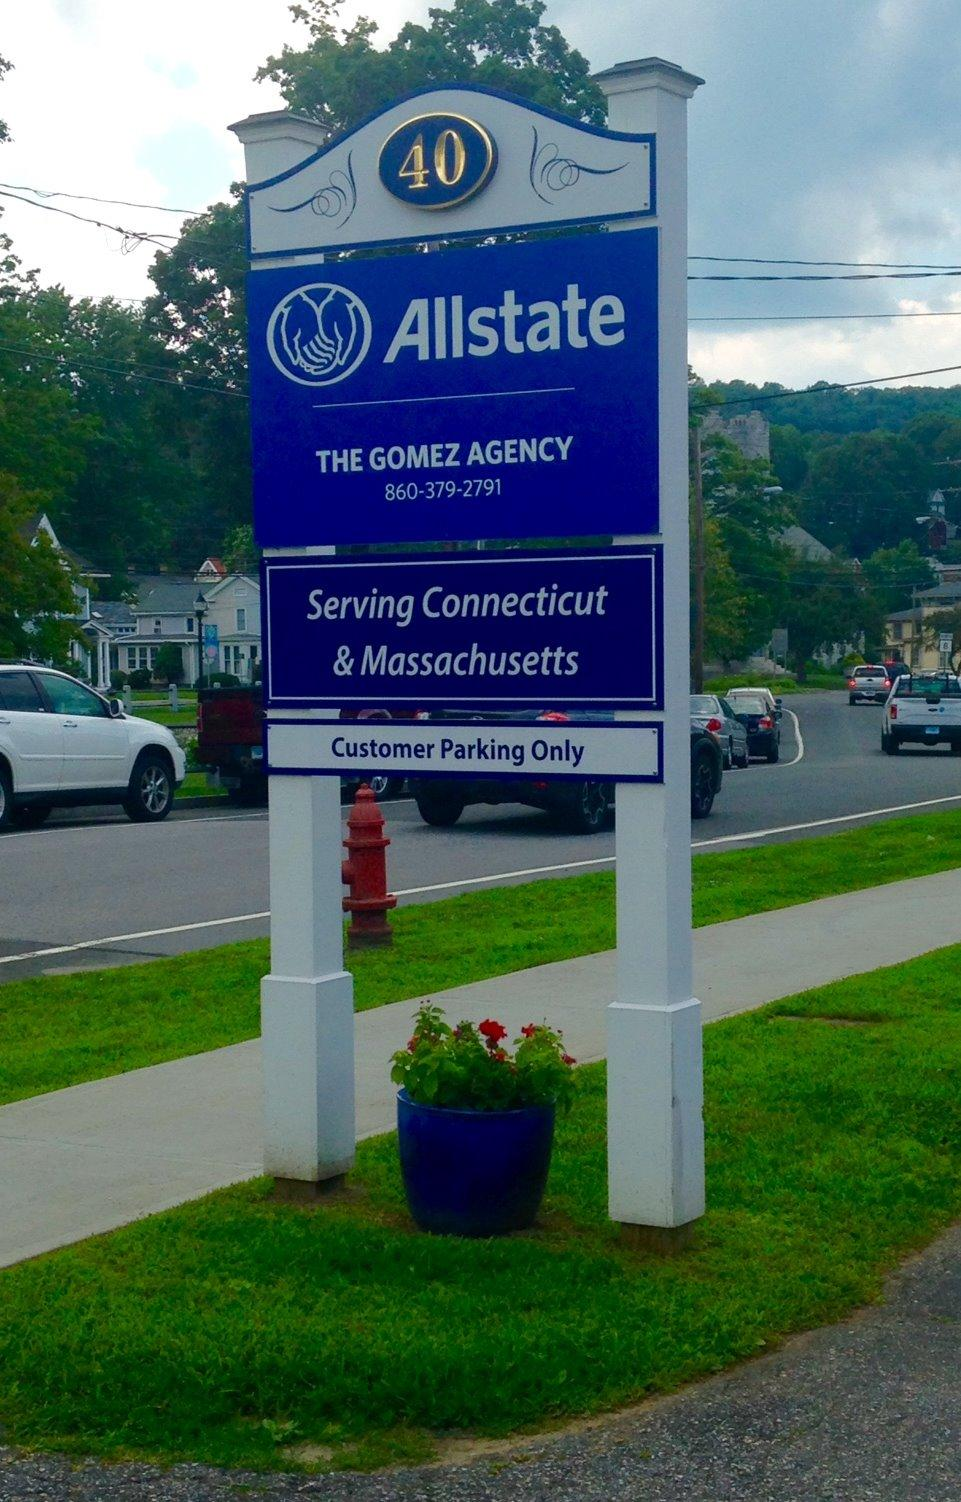 Life home car insurance quotes in winsted ct for Allstate motor club hotel discounts